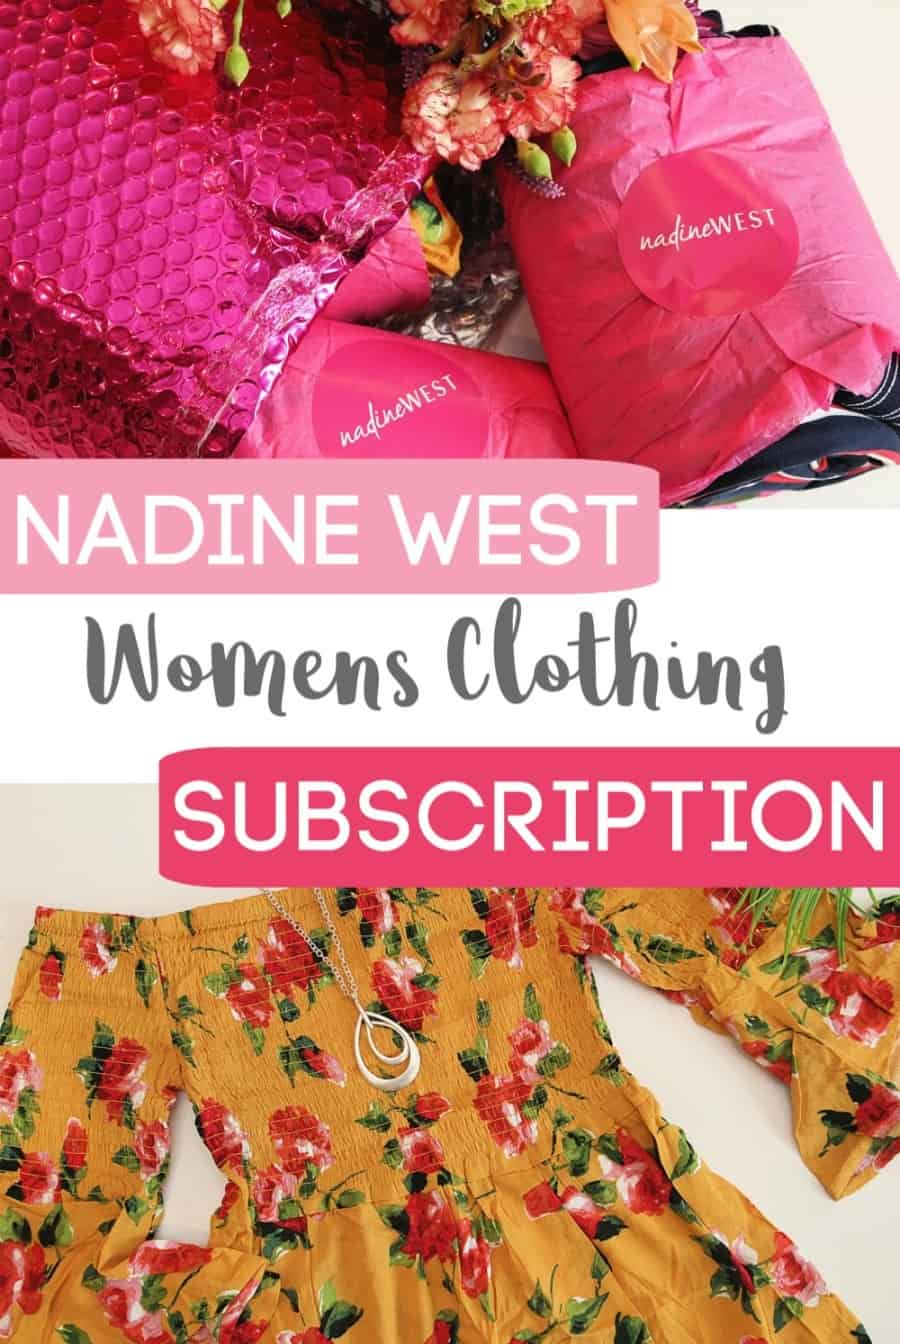 Nadine West Womens Clothing Subscription - September Box Reveal